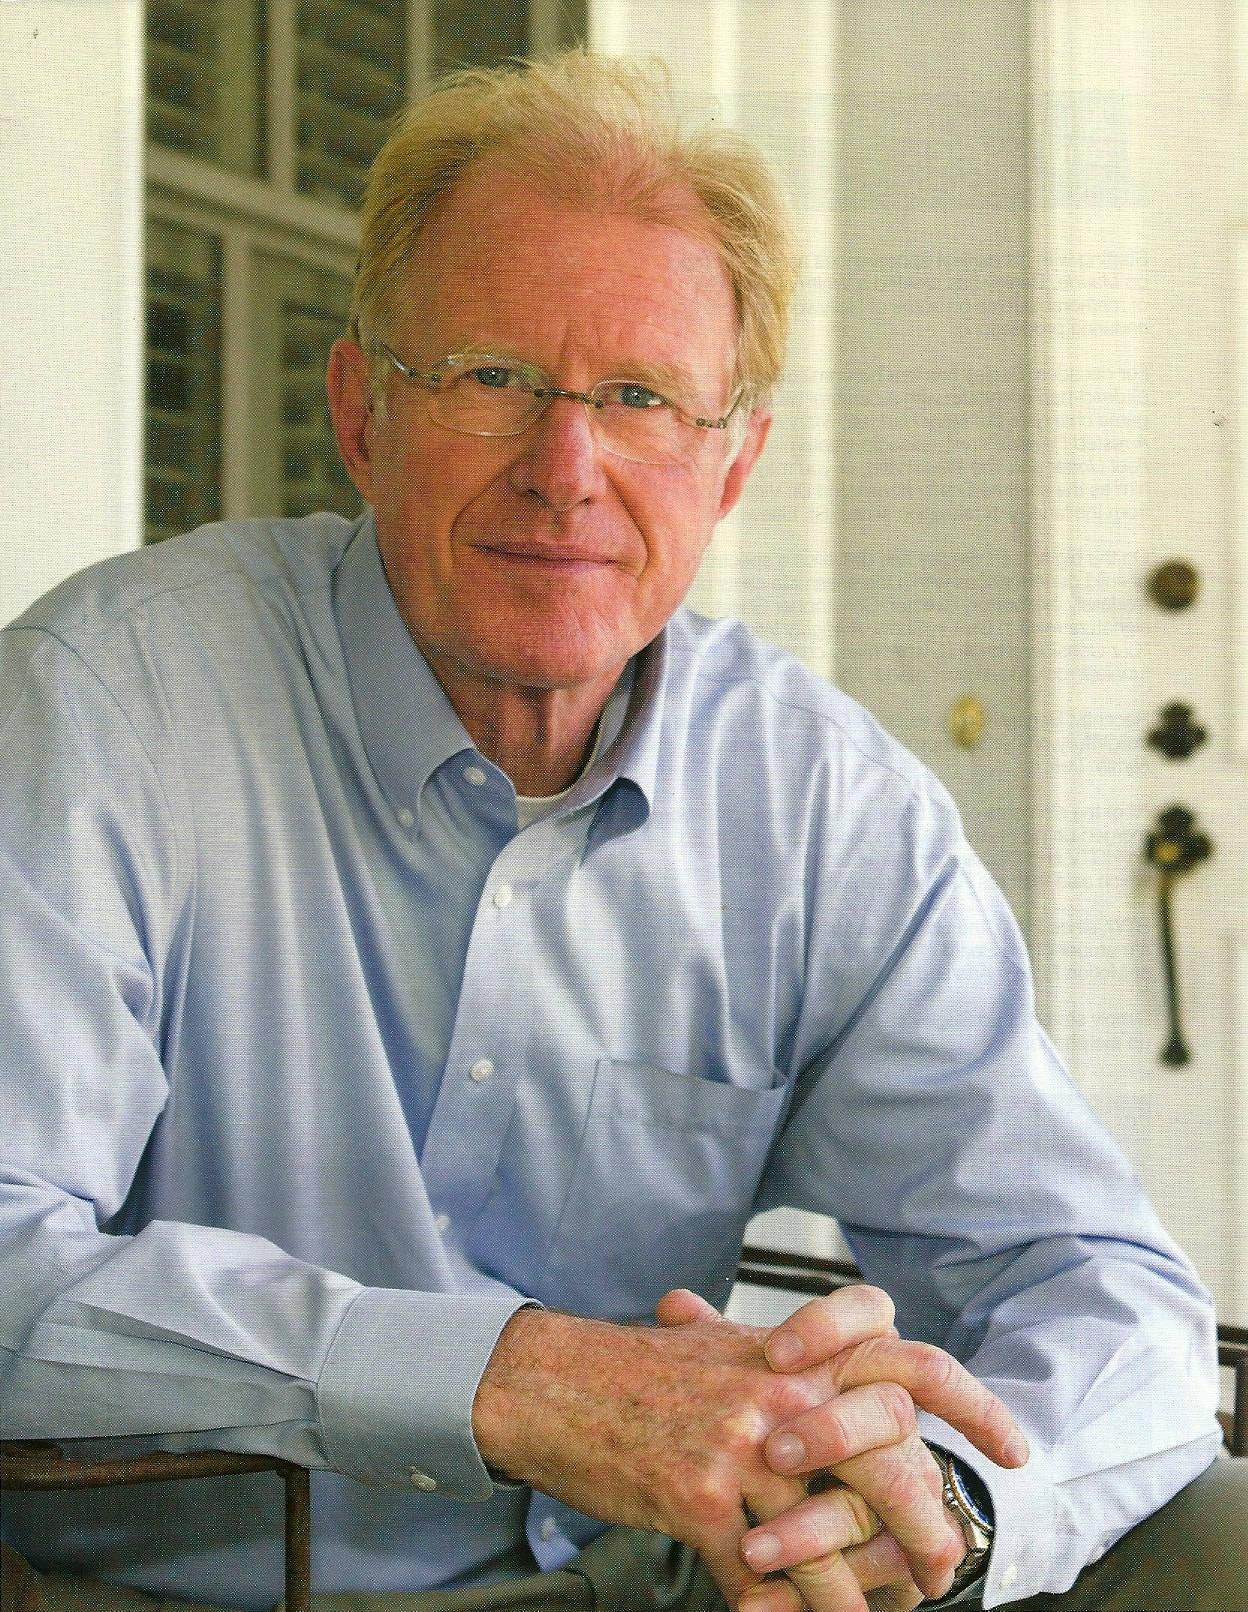 Ed Begley Jr. Background